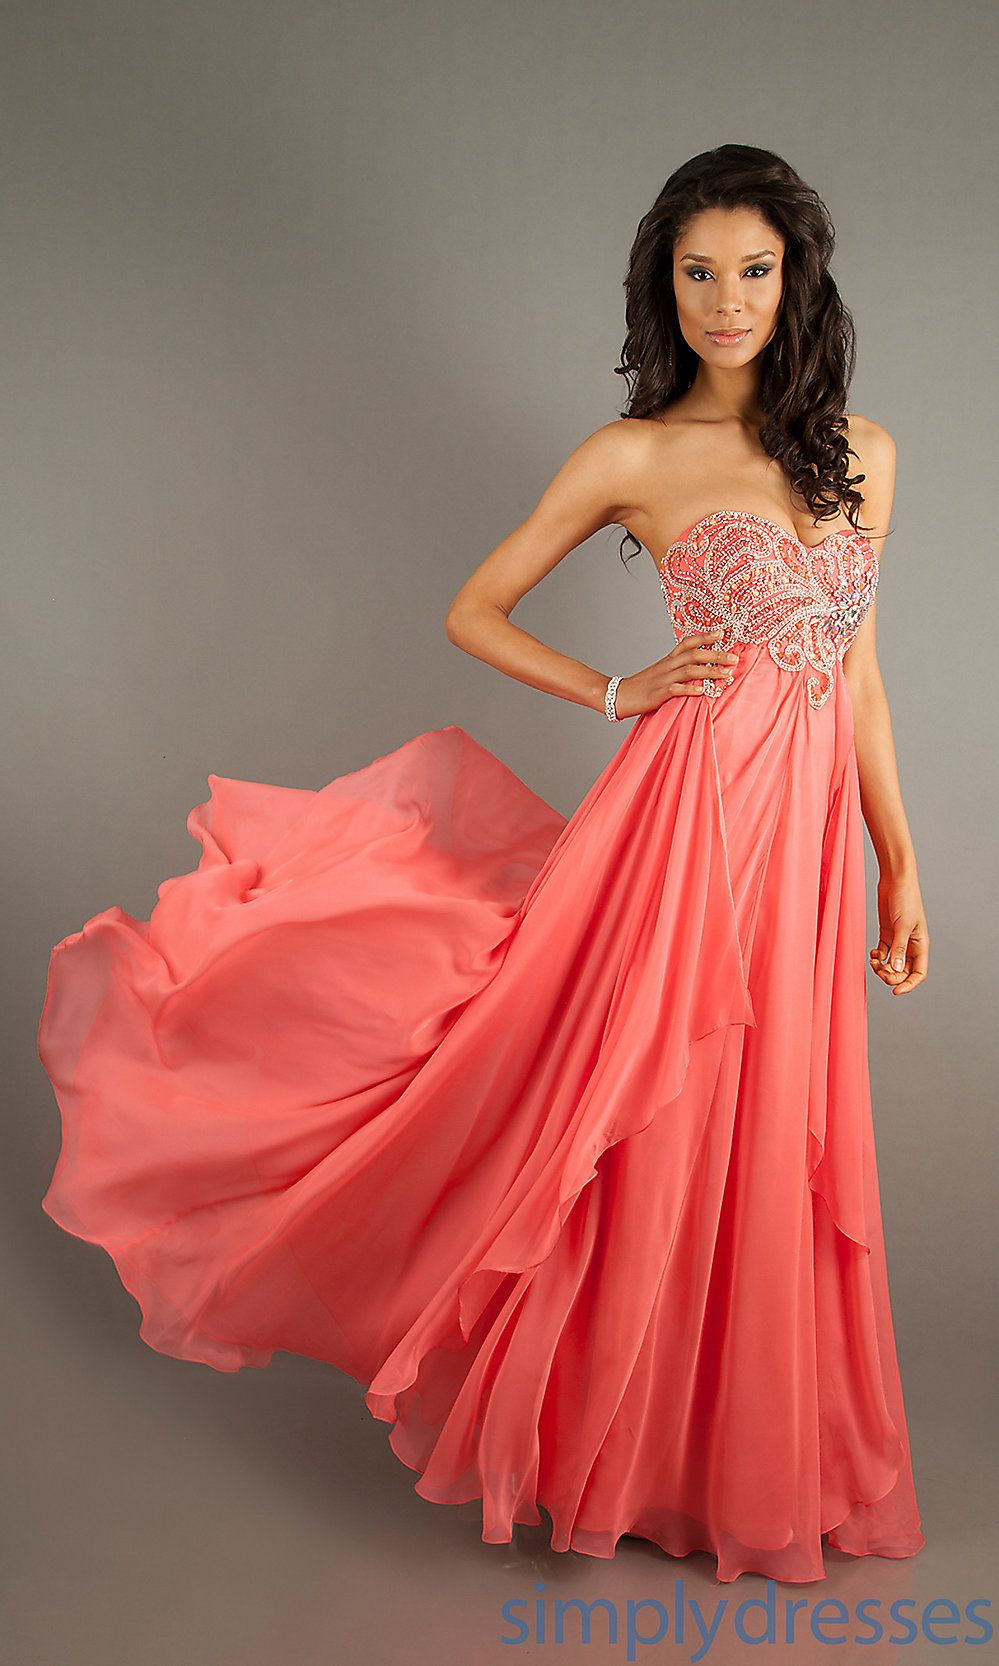 Where to shop for prom dresses prom dresses ueue simple prom dresses